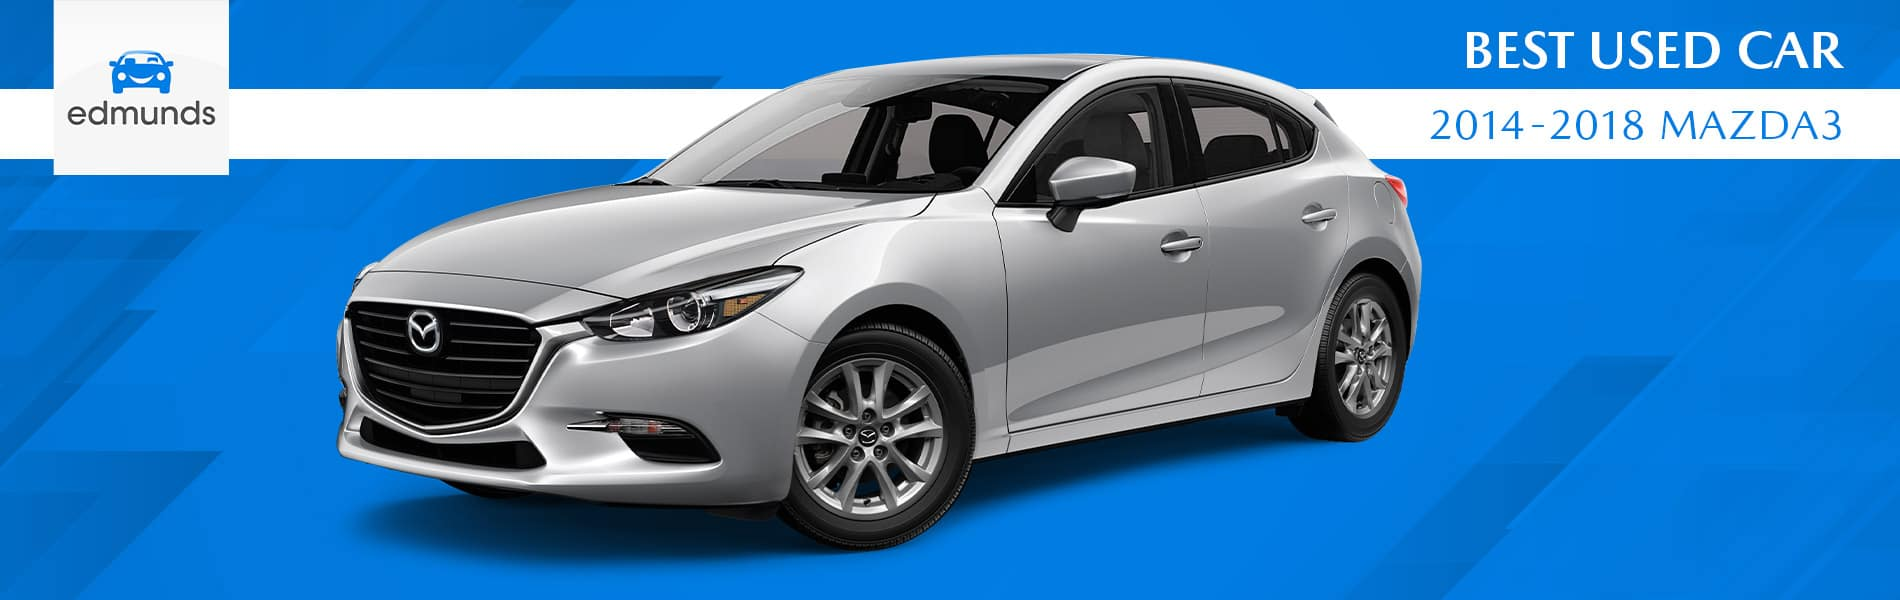 The Mazda3 is the Edmunds Best Used Car for 2019